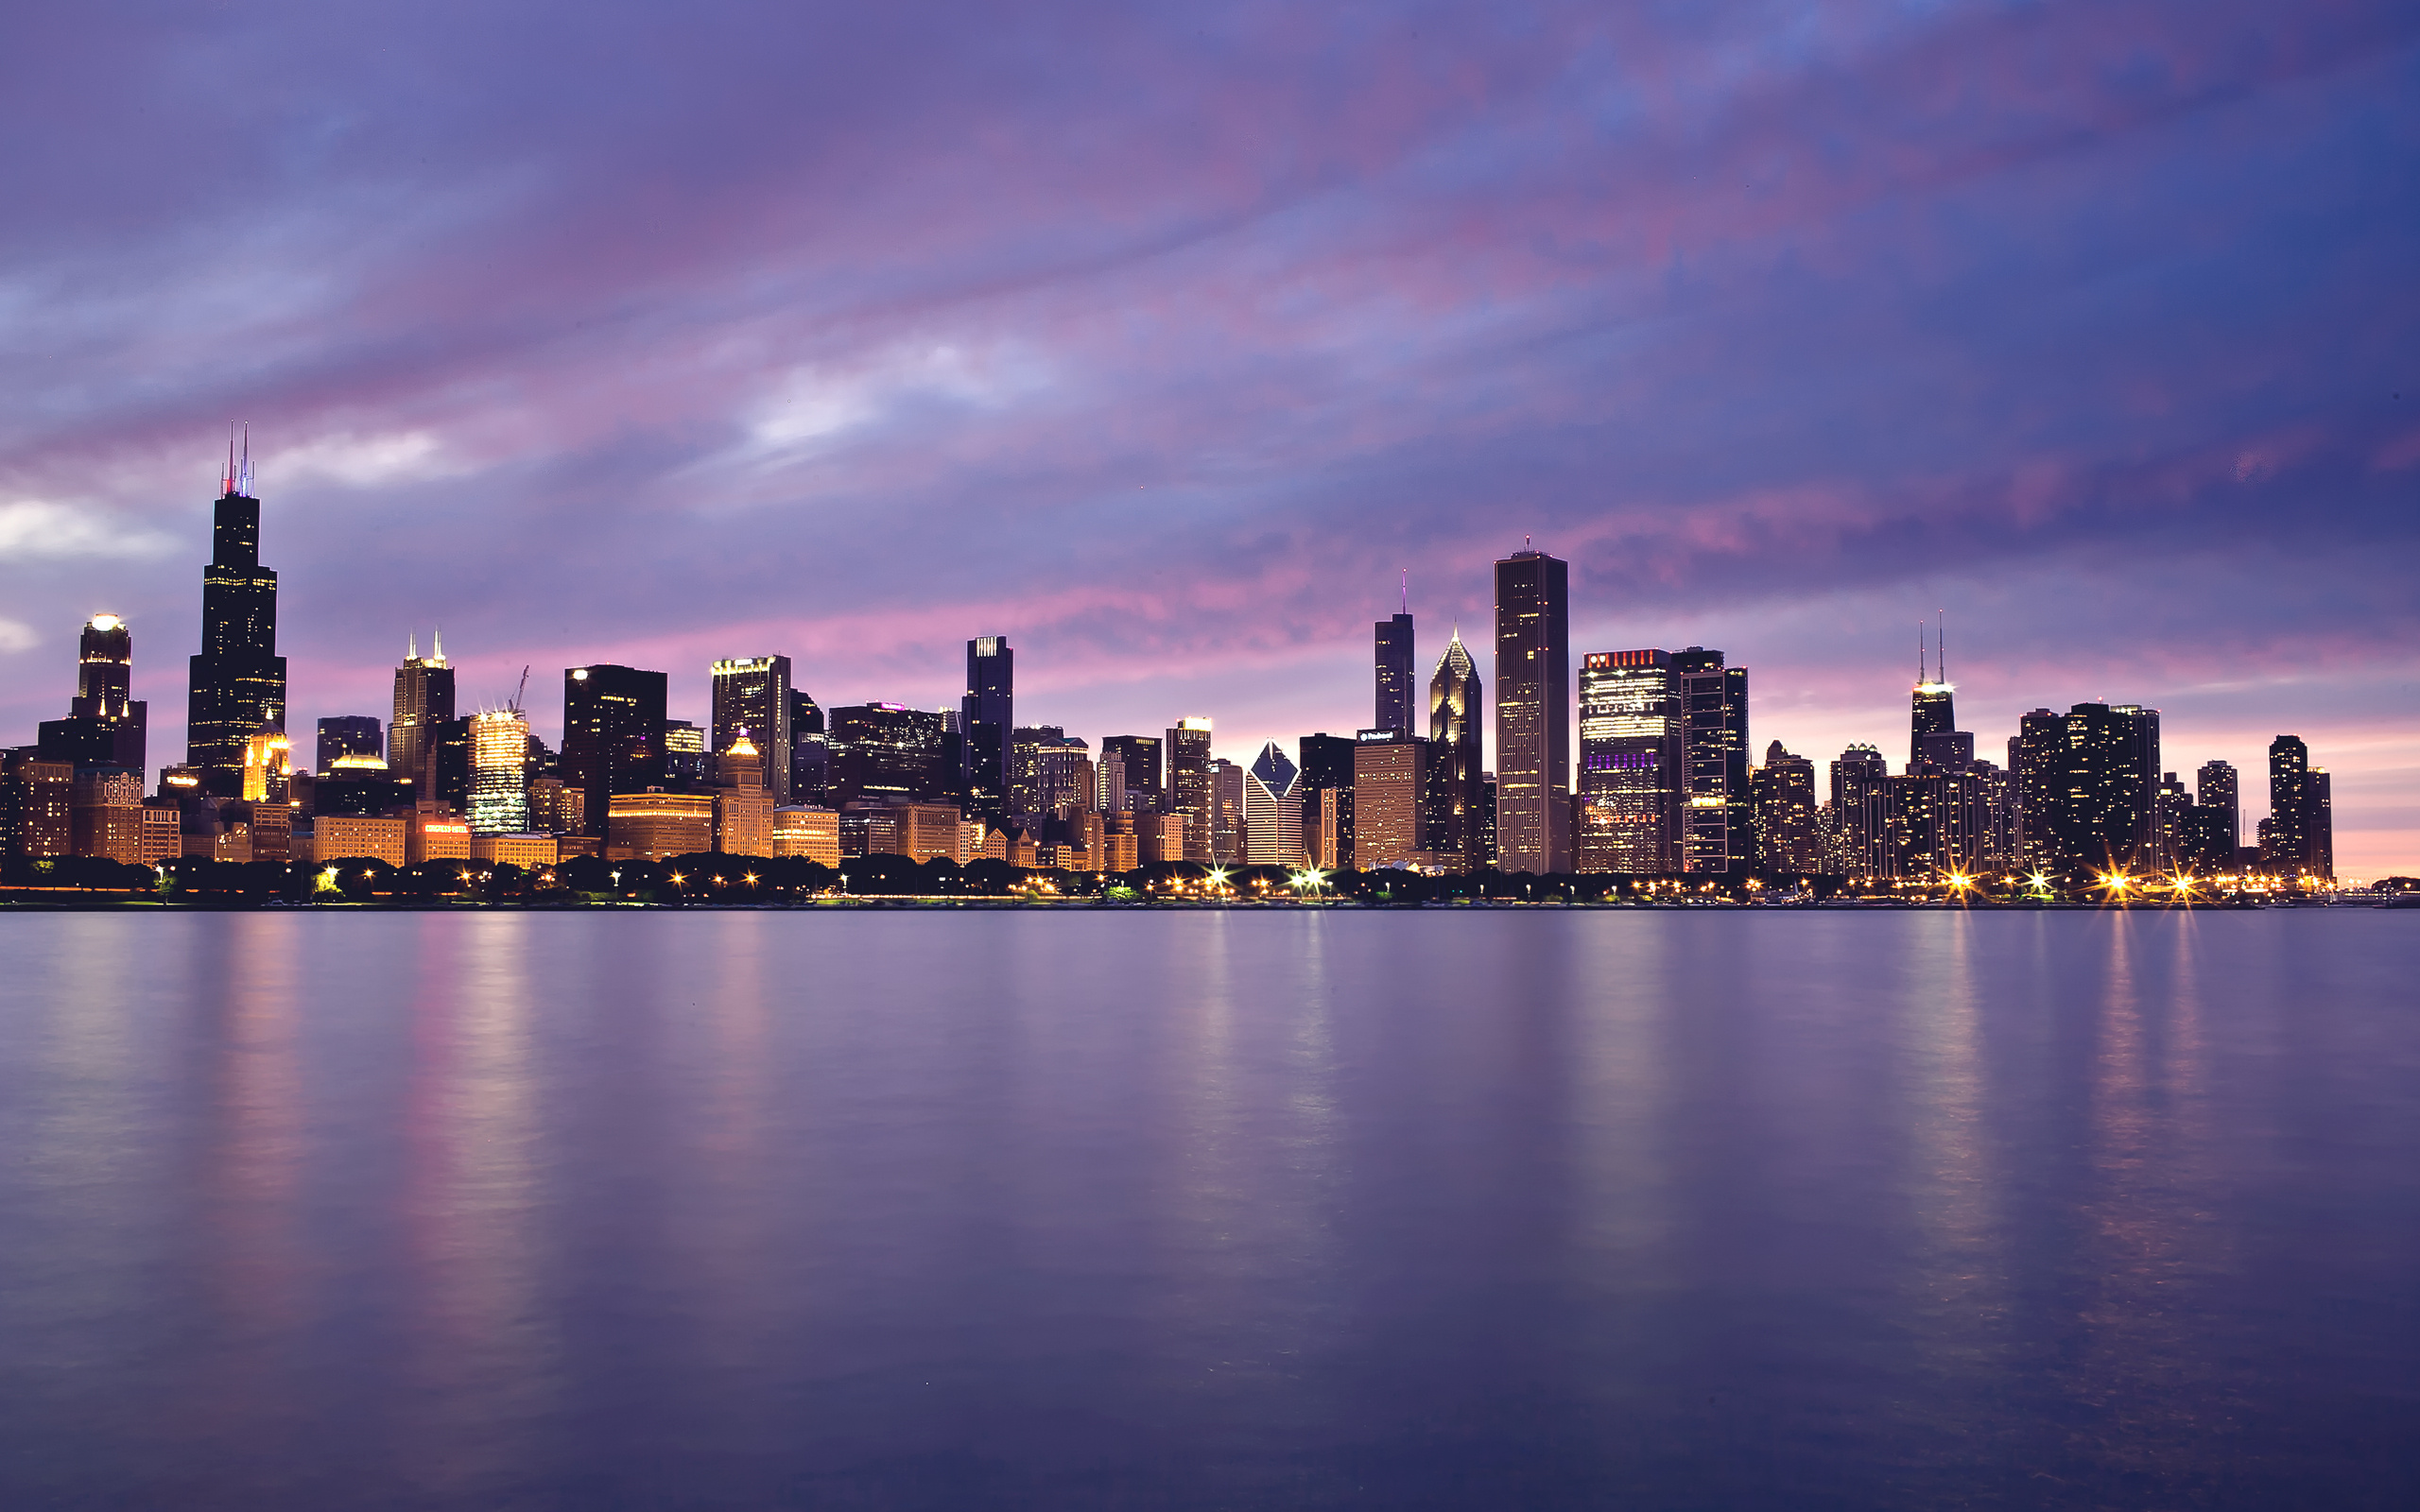 Architecture Widescreen Chicago Lights Buildings Skyscrapers Lake Sunset A 1147090 Wallpaper wallpaper